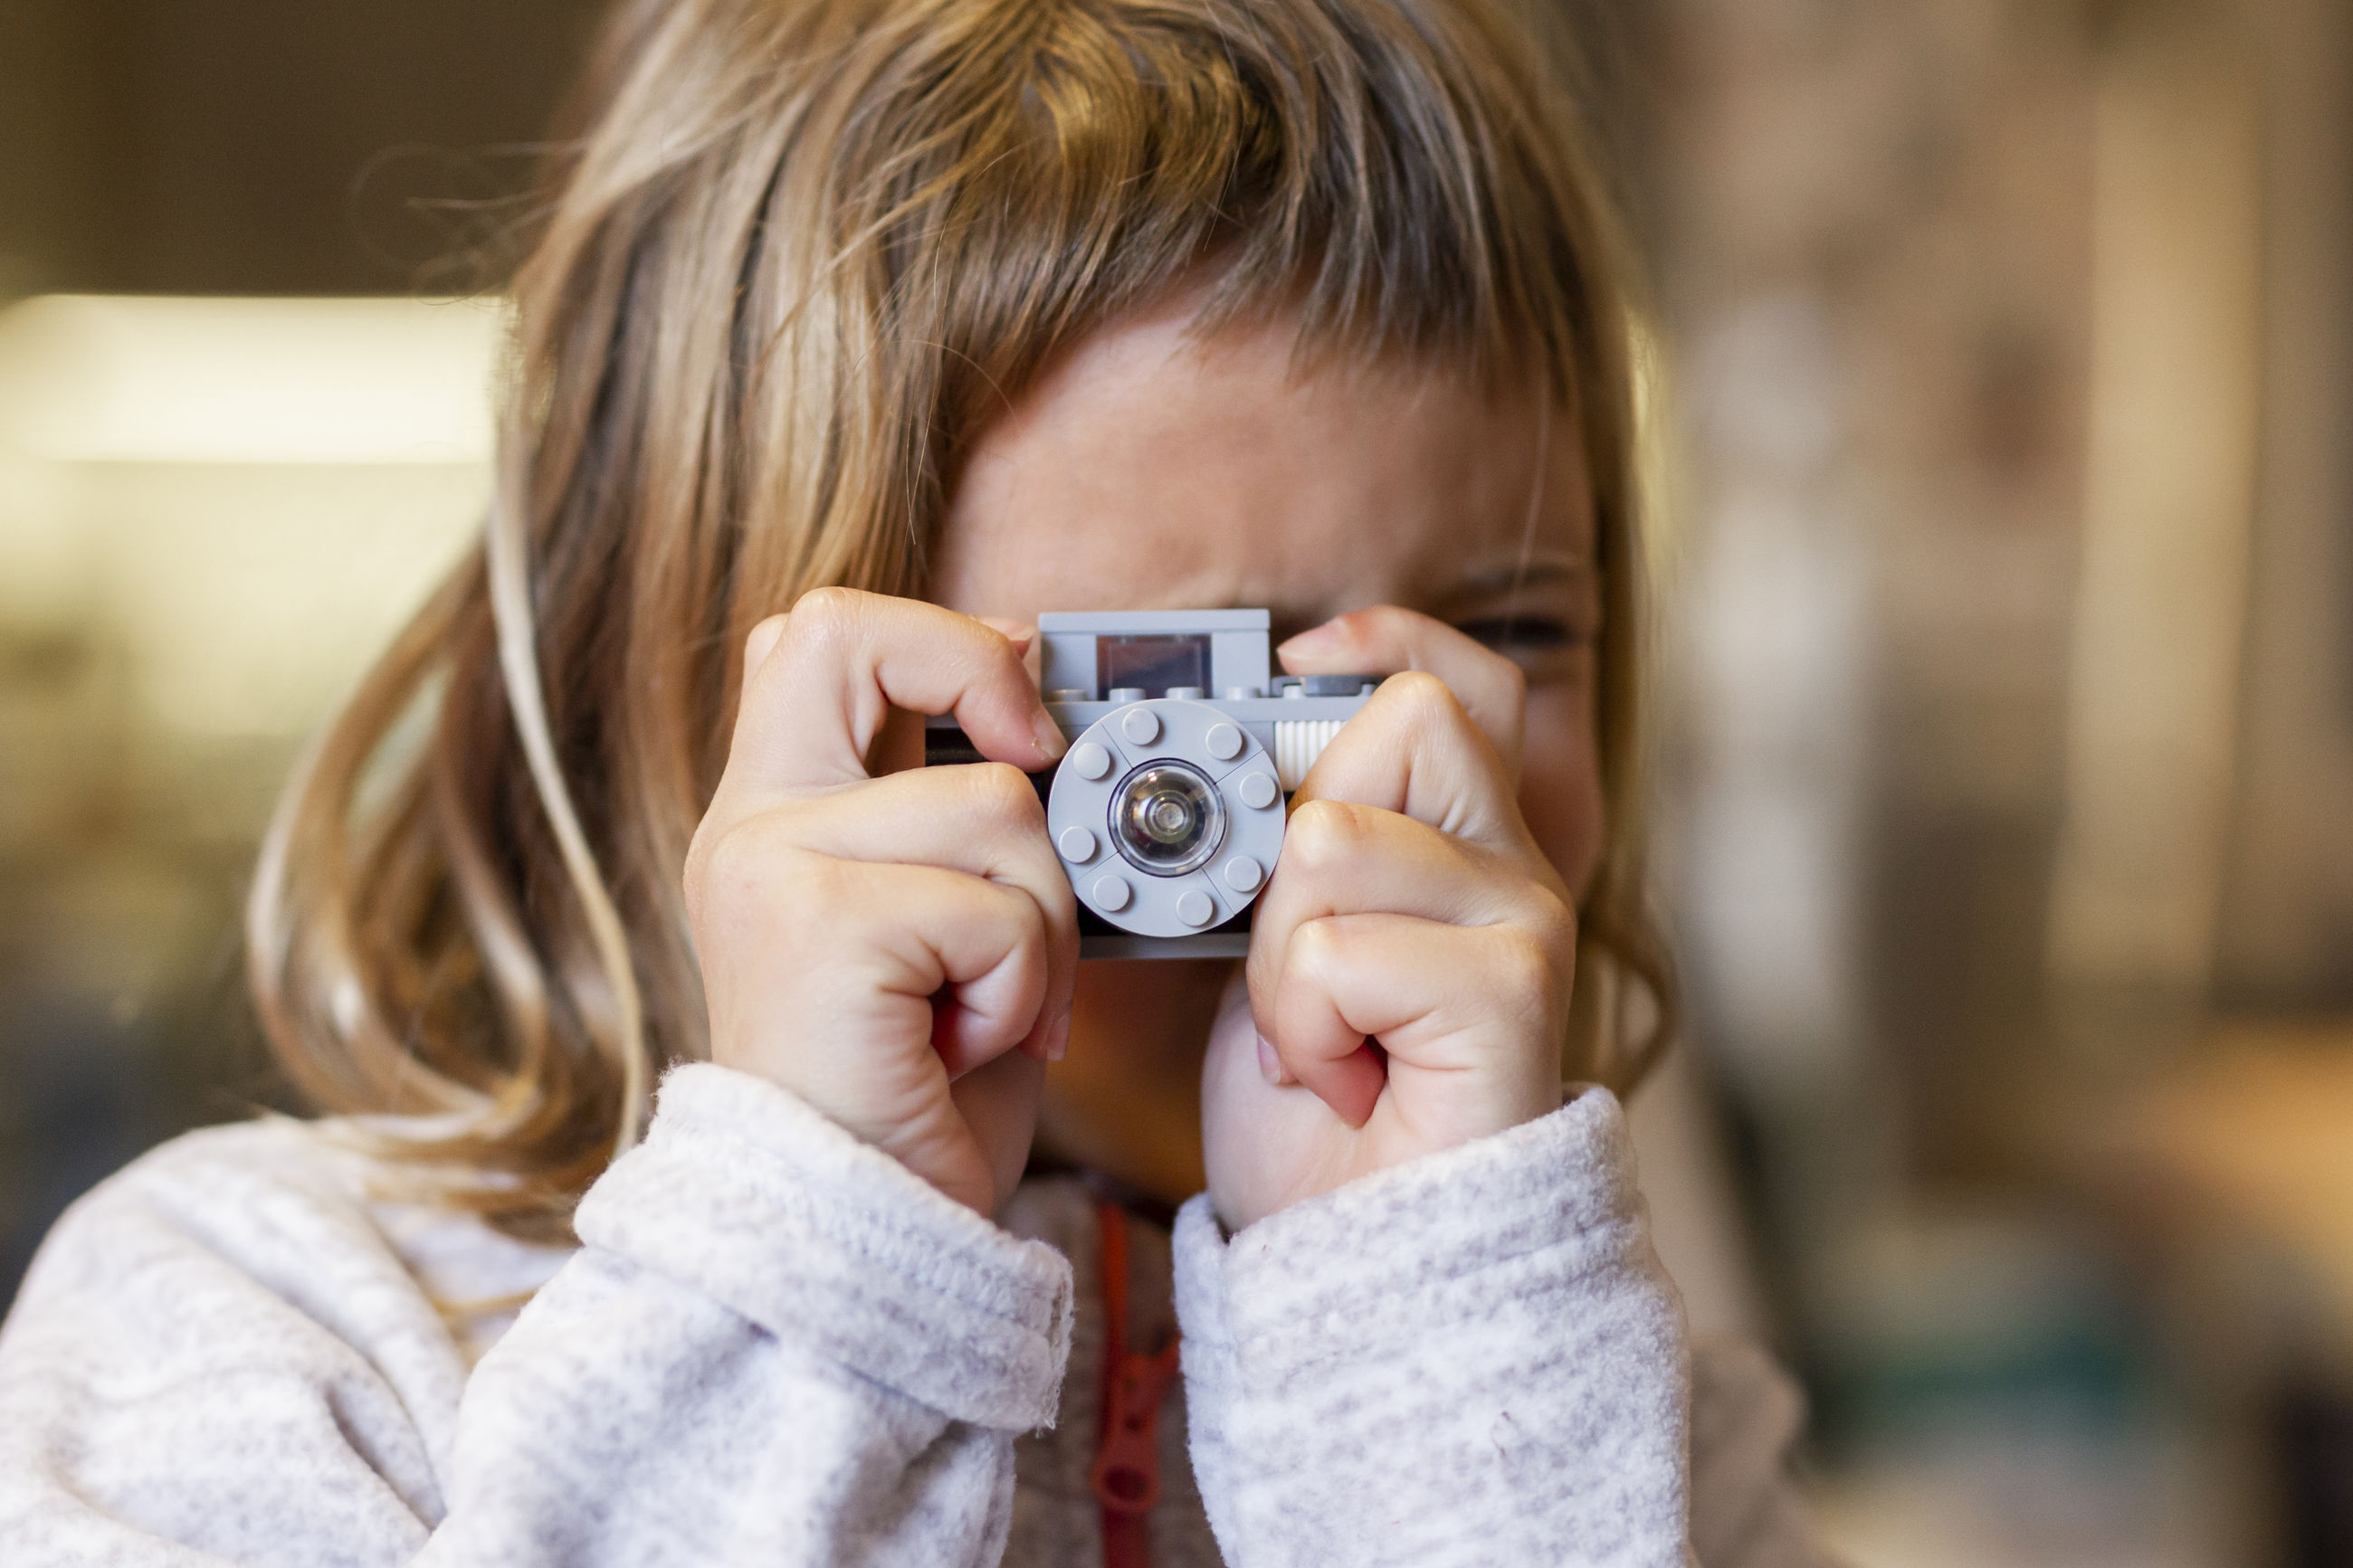 CLOSE-UP PORTRAIT OF BOY WITH CAMERA